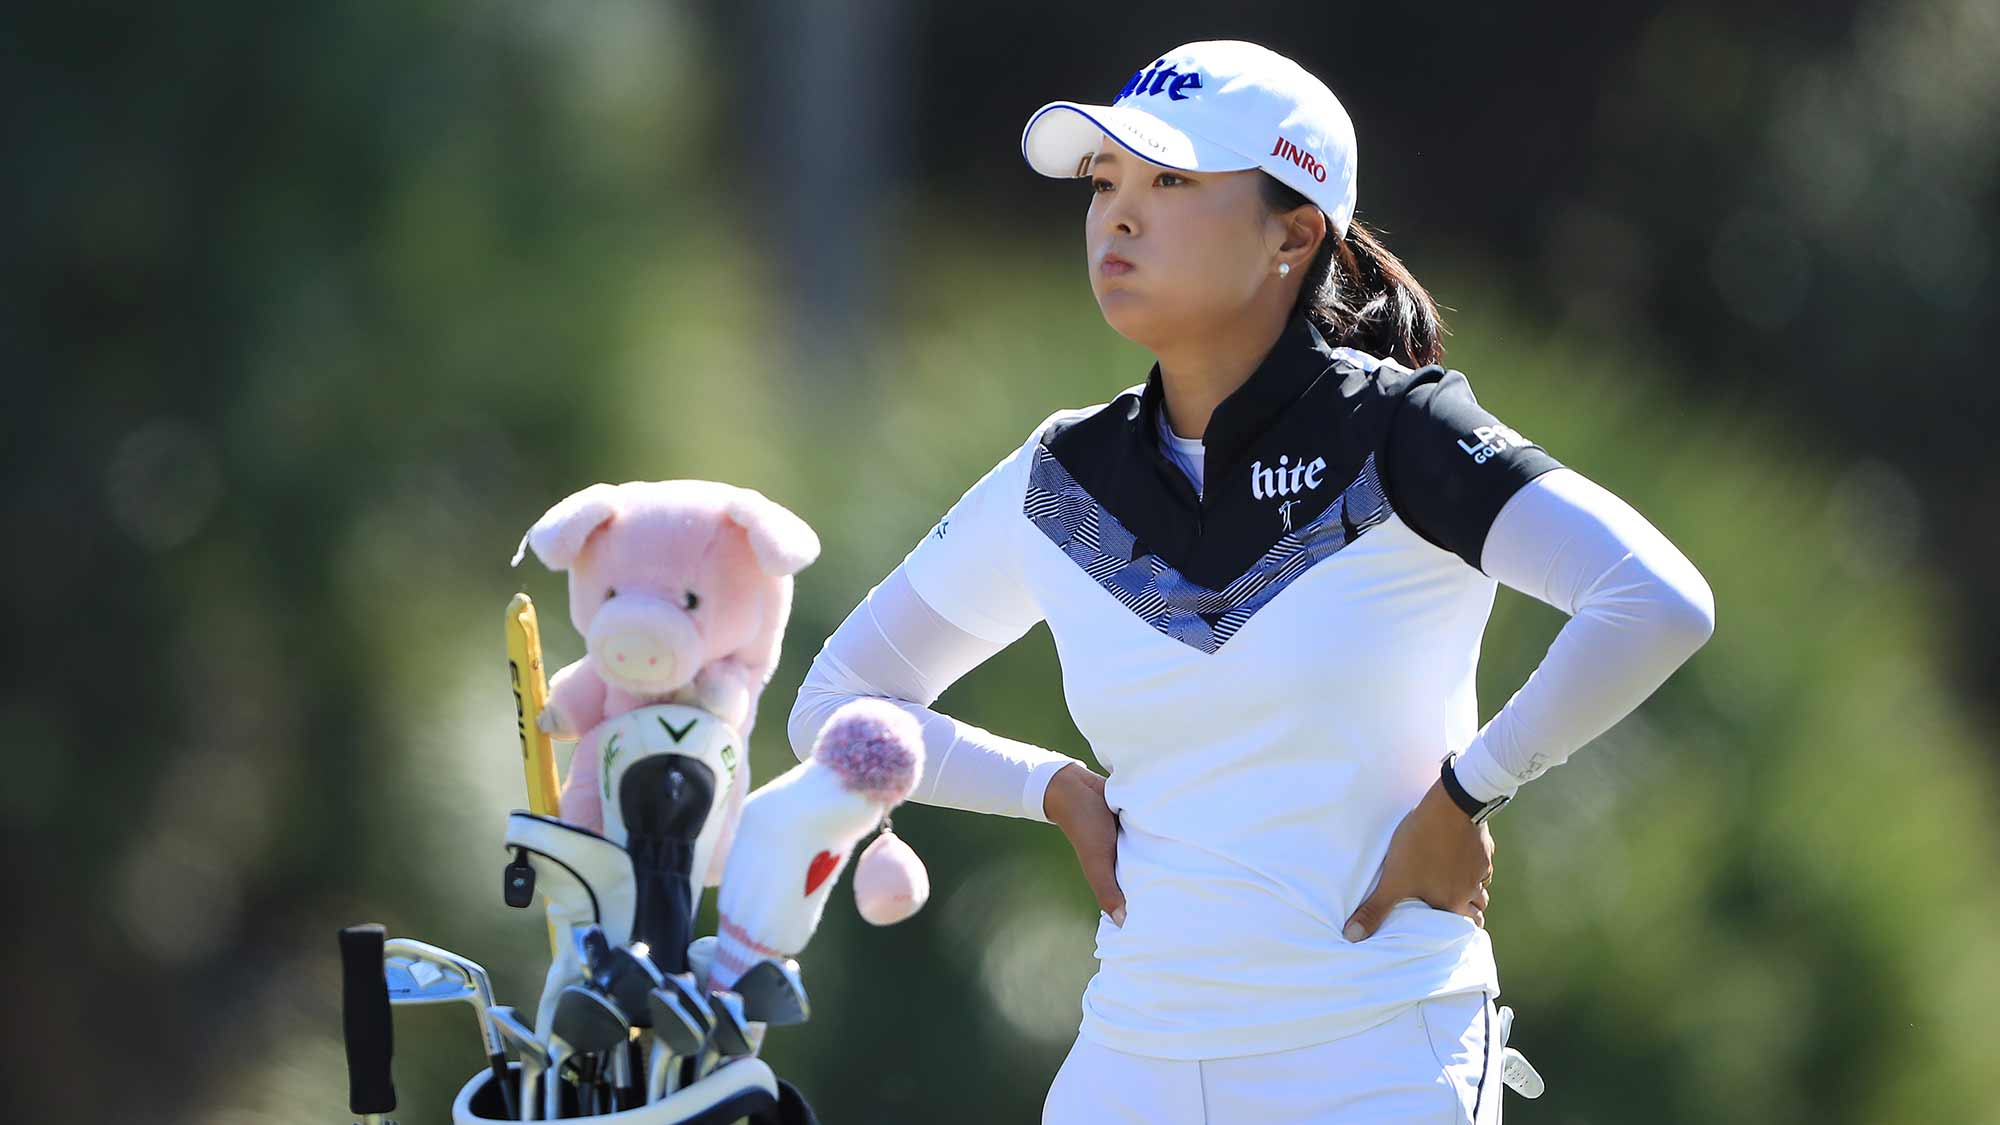 Jin Young Ko of Korea looks on after playing her shot from the third tee during the first round of the CME Group Tour Championship at Tiburon Golf Club on November 21, 2019 in Naples, Florida